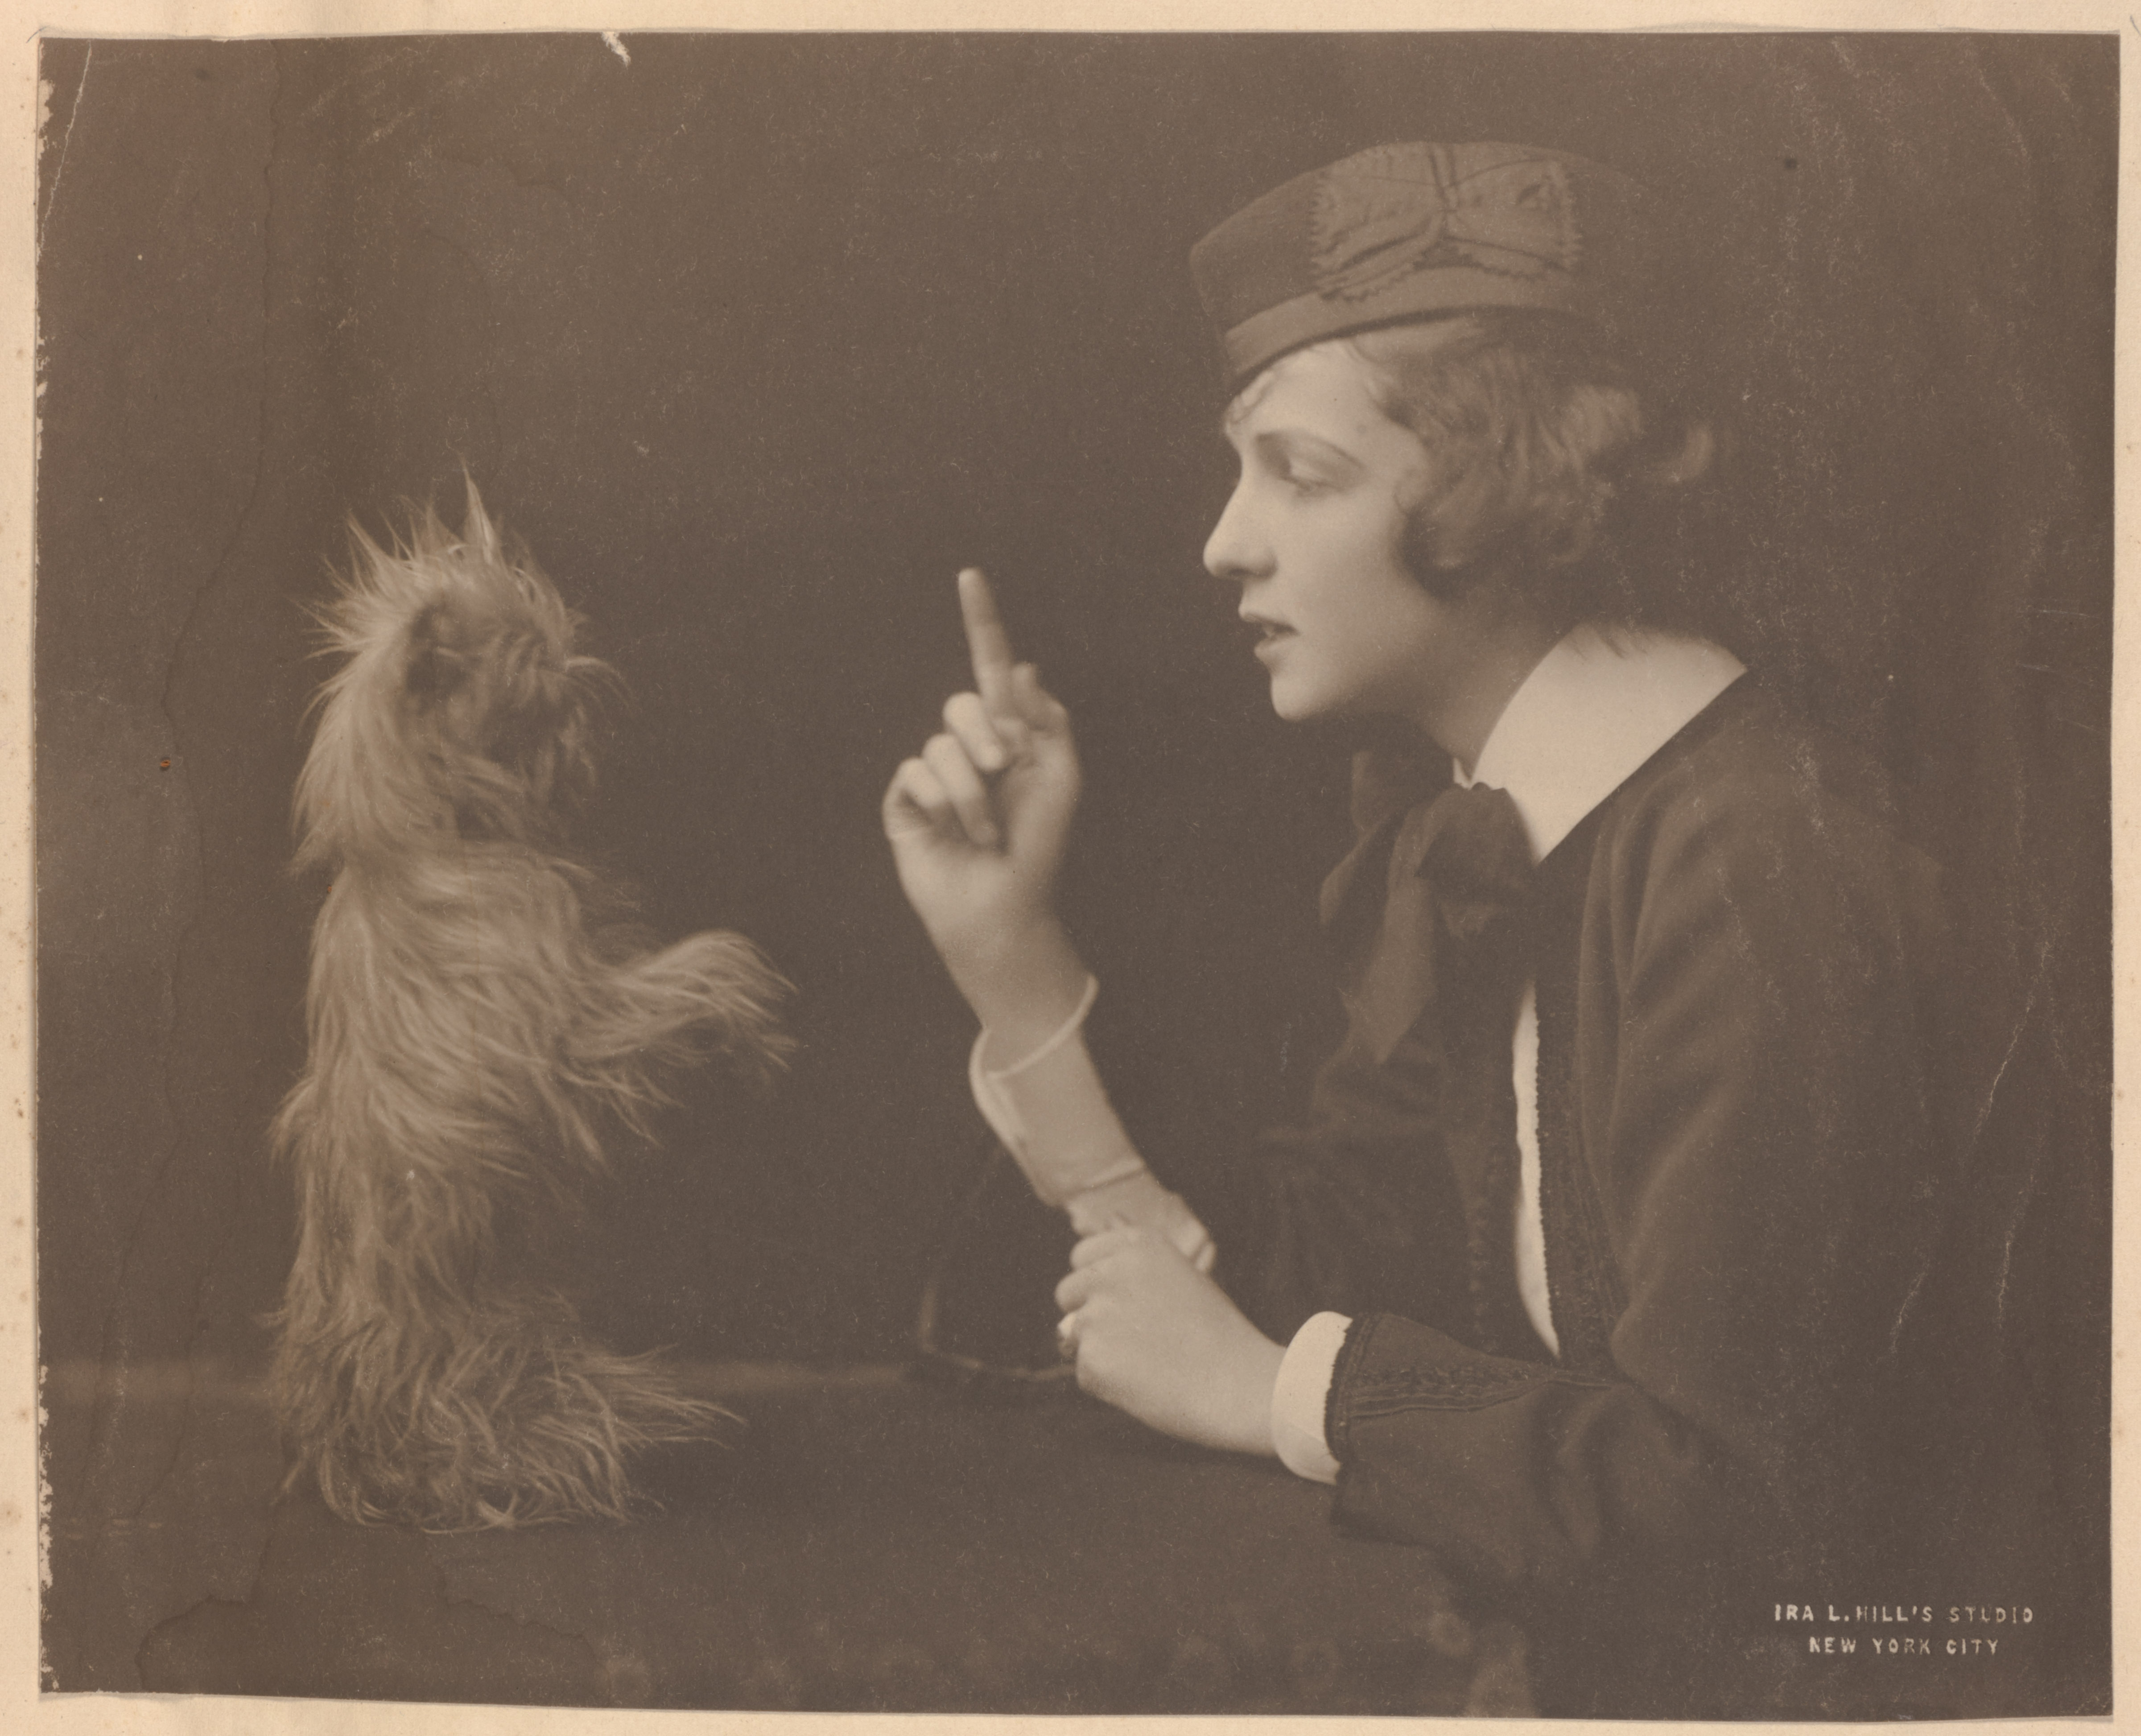 Silent film star Irene Castle was a style icon who later dedicated her life to rescuing dogs and other animals.